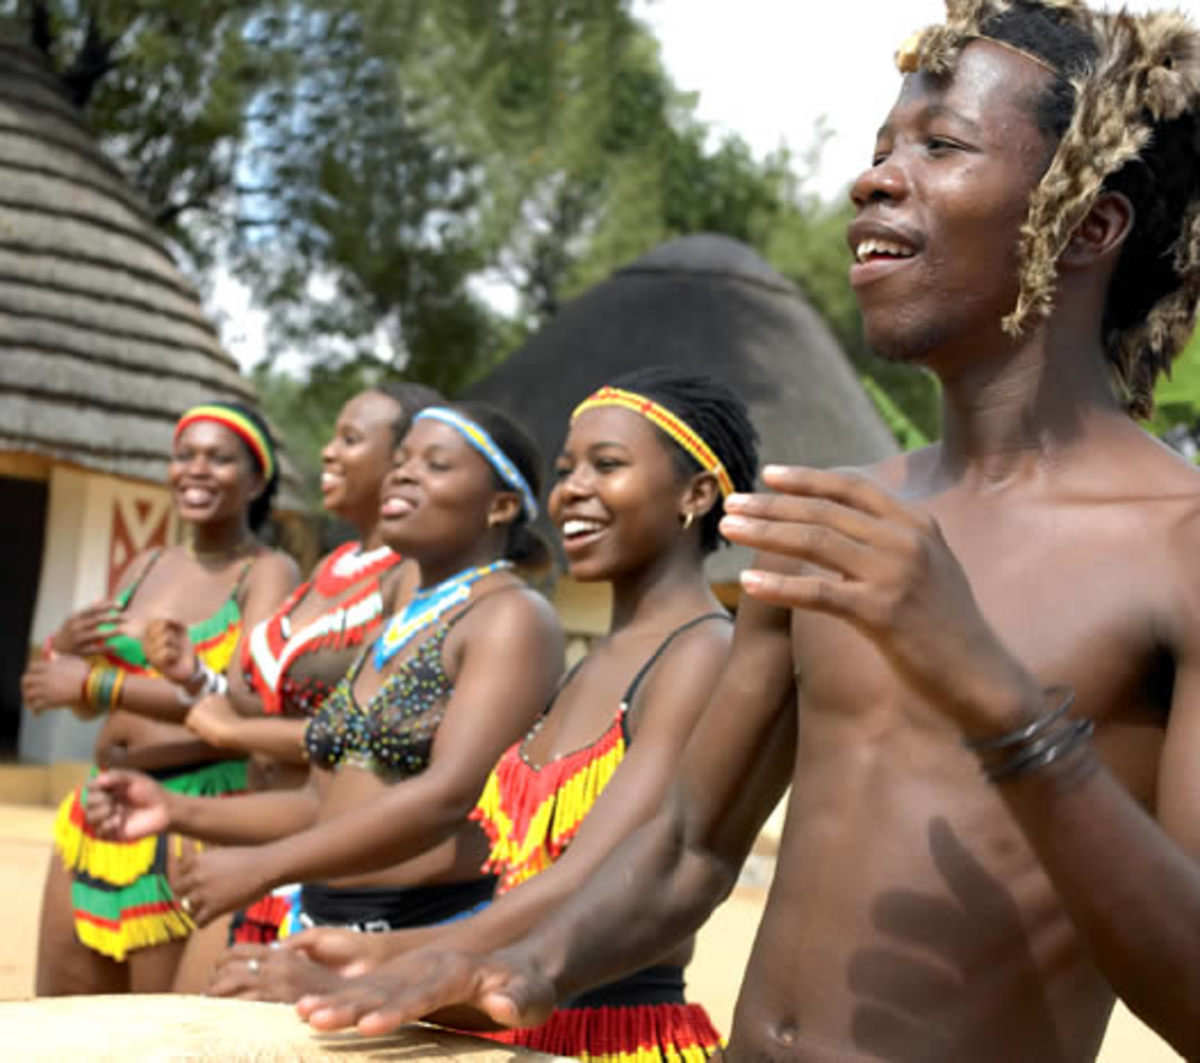 Within Motseng(Home) the varied cultures share their history, customs and tradition with guests by means of song, praise, stories, with poets and narrators of their cultural history present and the meaning of it all for the Peoples of South Africa